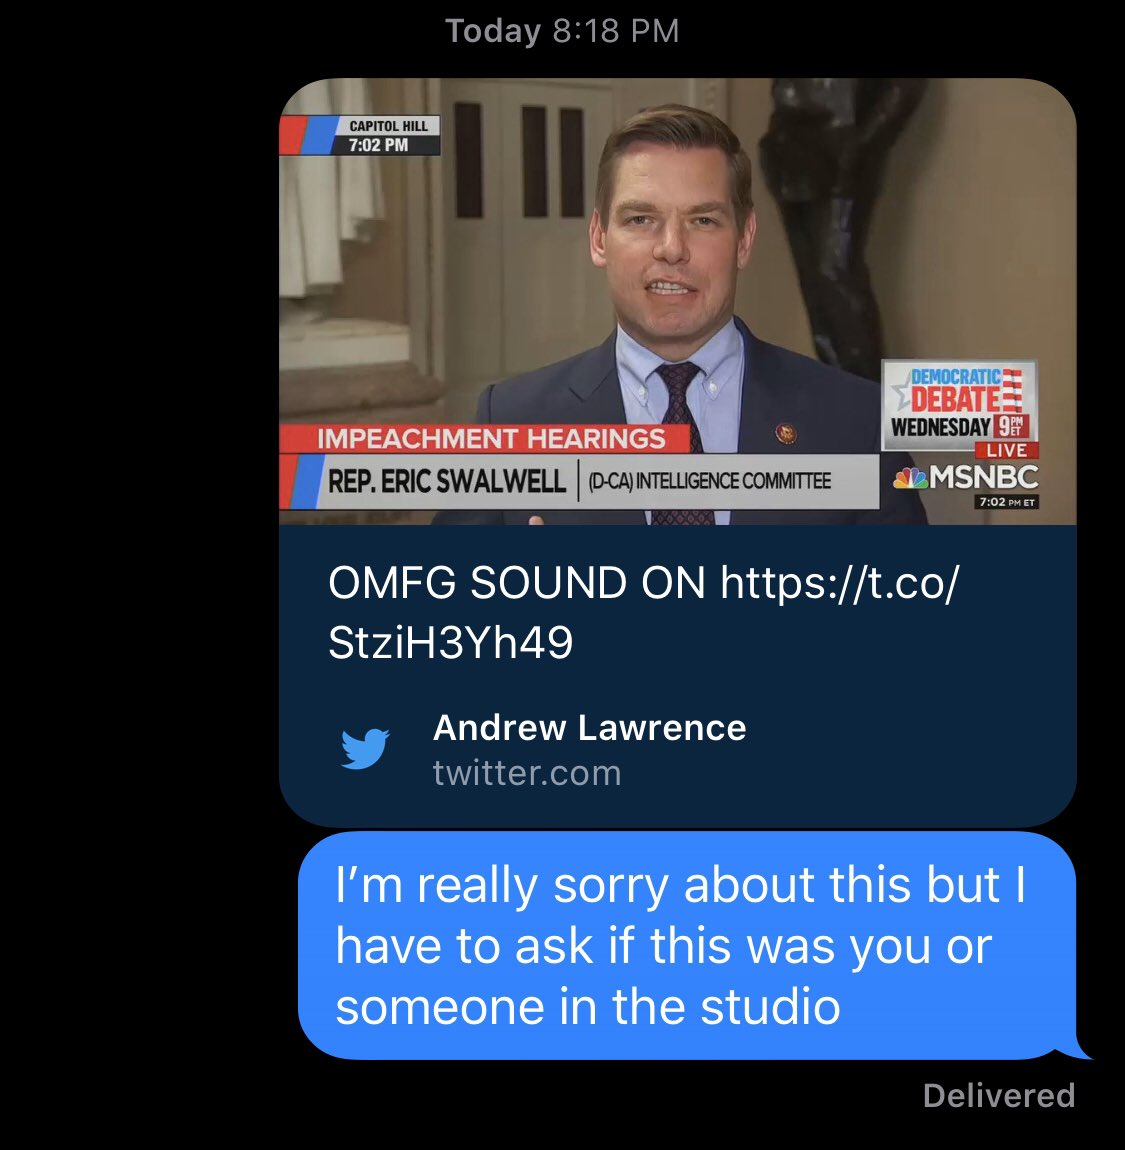 screenshot of messages between addy baird and eric swalwell